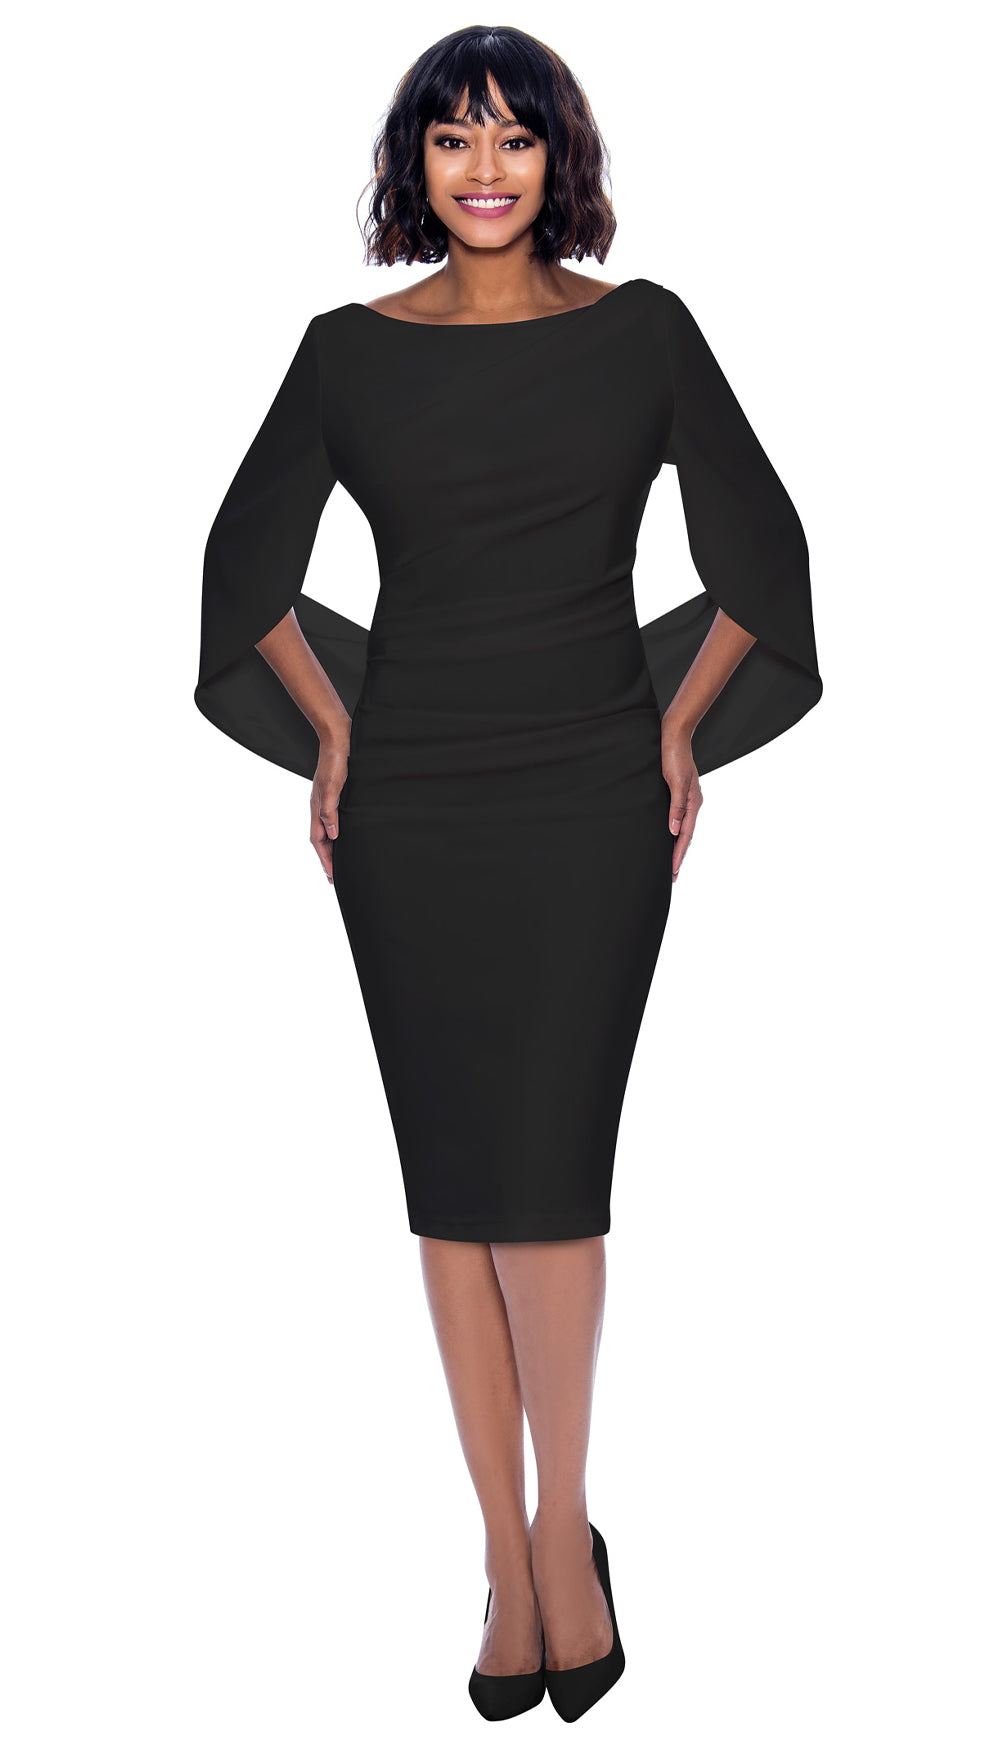 Terramina Dress 7816-Black - Church Suits For Less